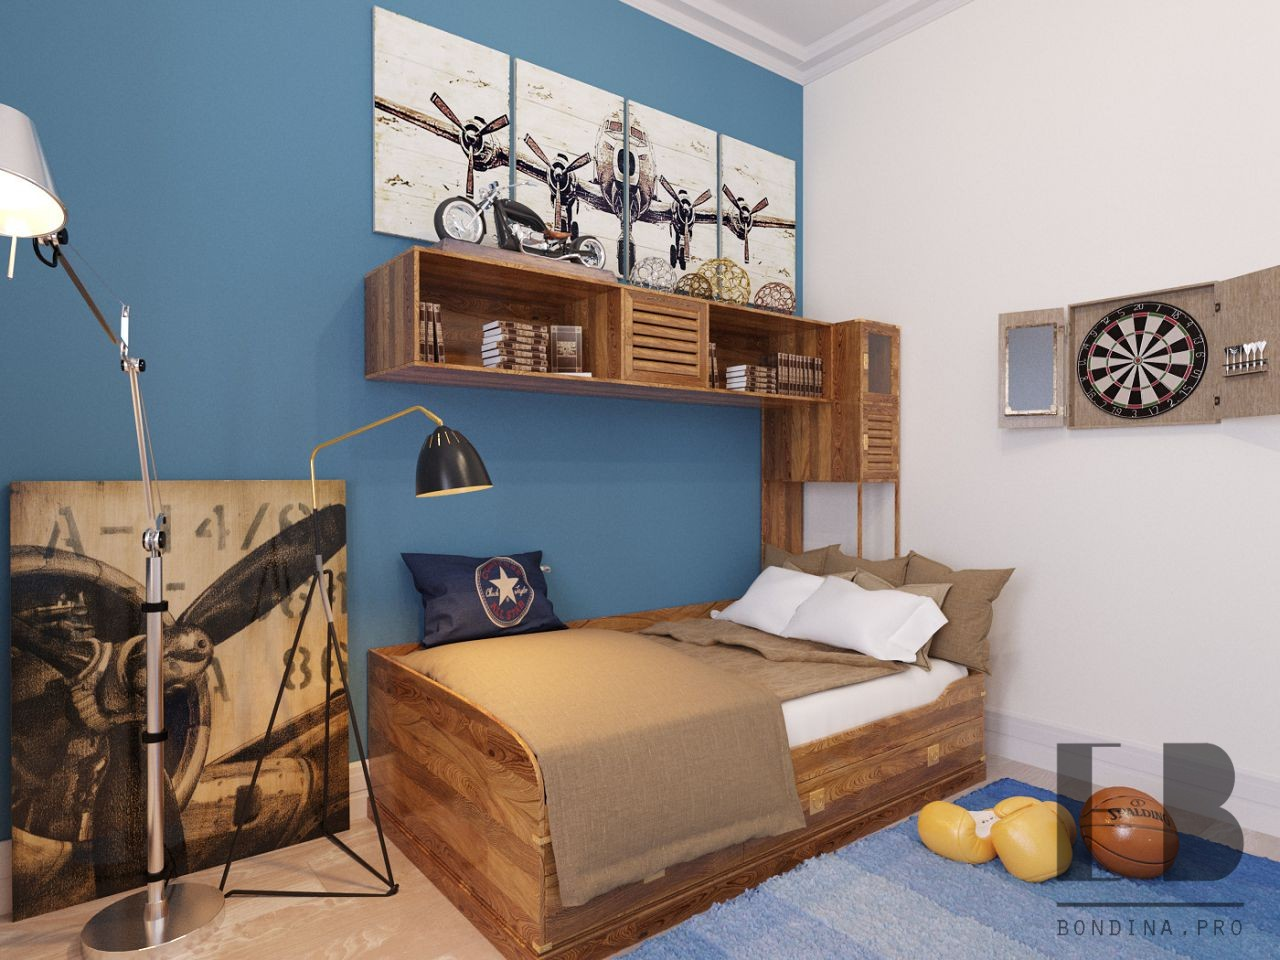 Children's room interior with appliances